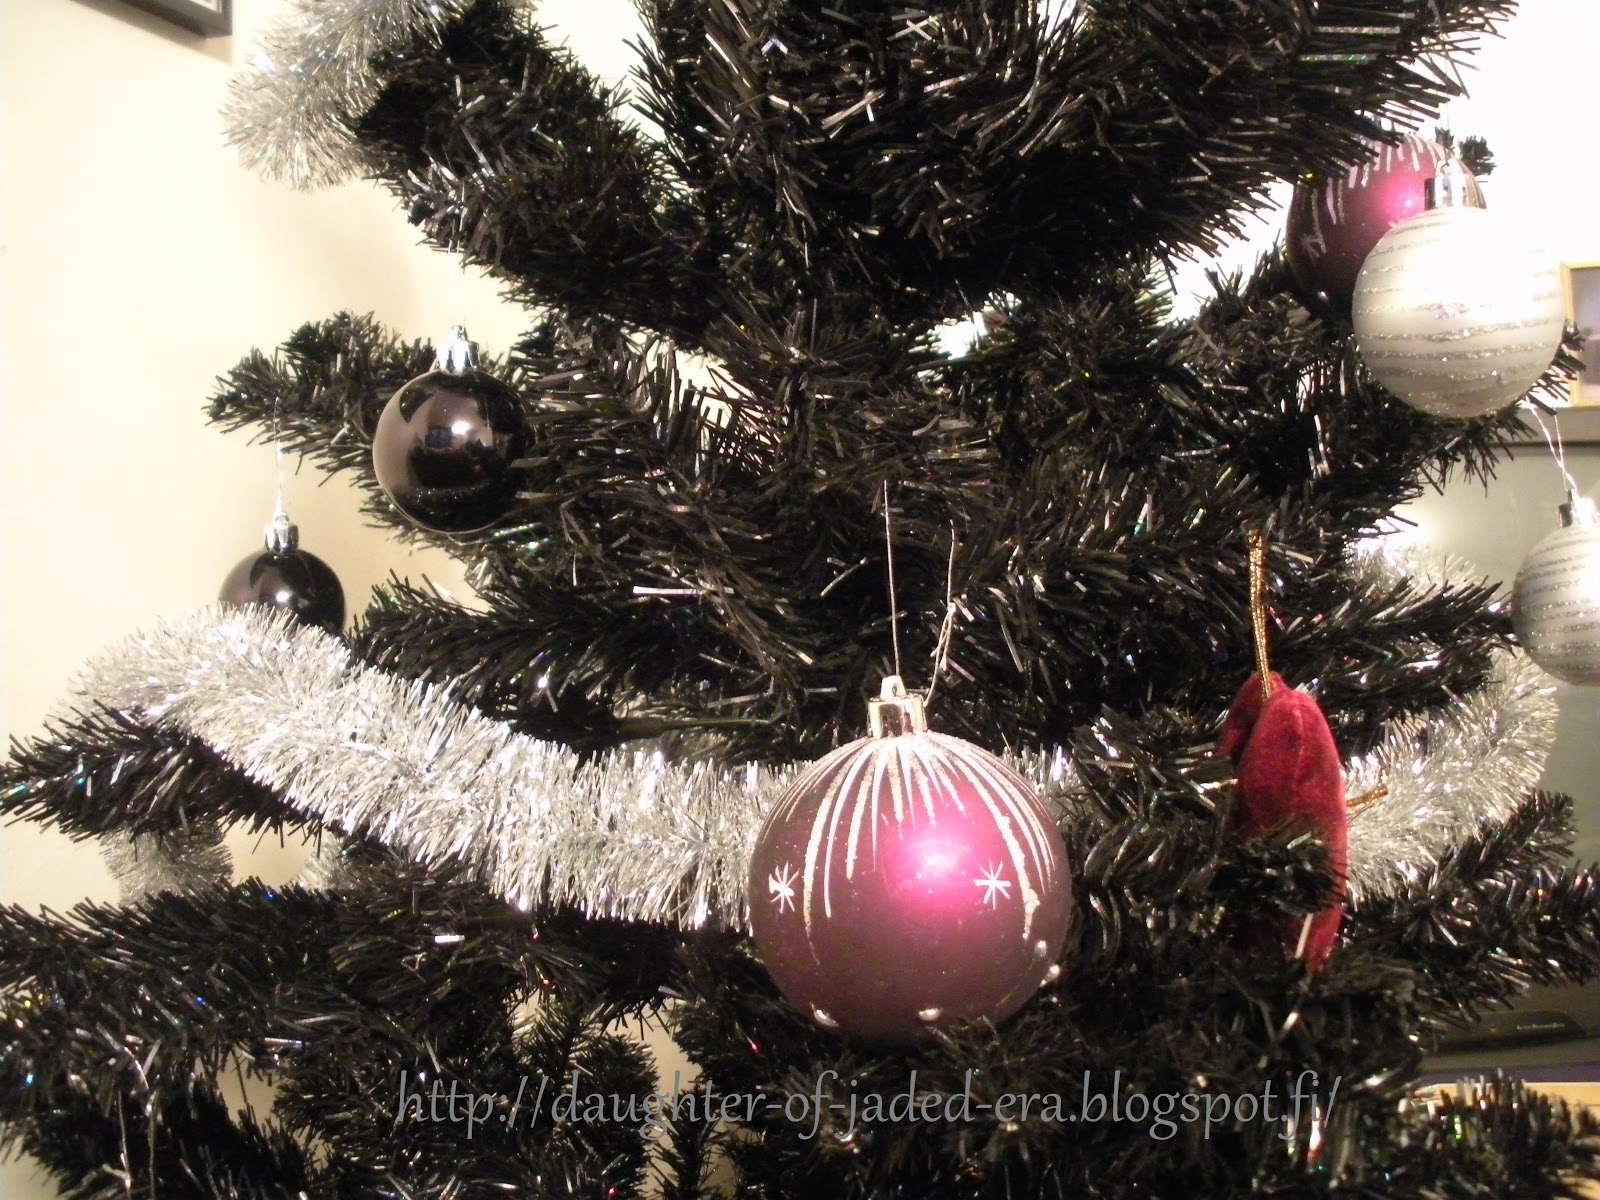 Gothic christmas tree decorations is a black christmas tree